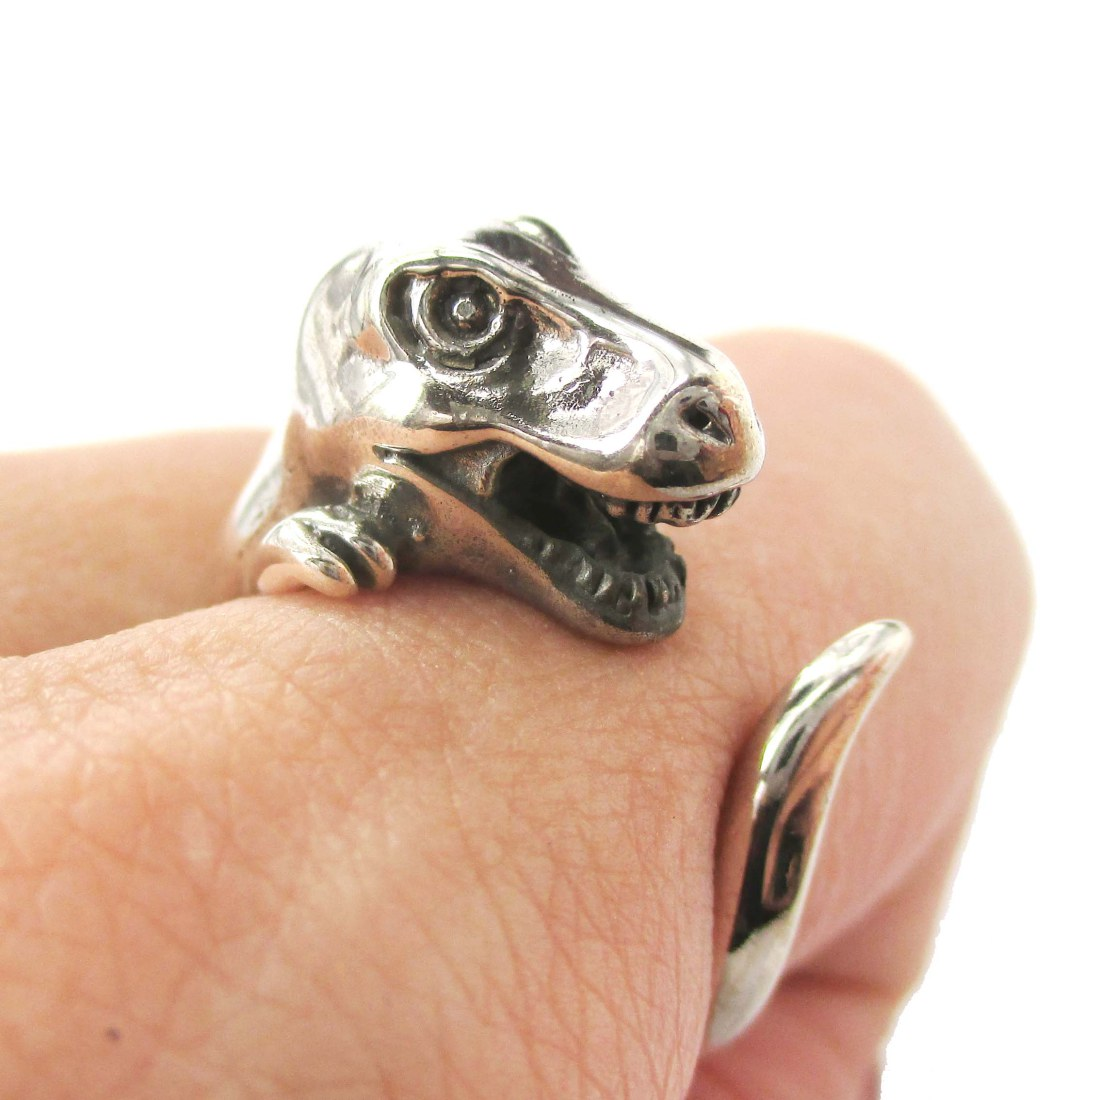 collections rings jewelry by dinosaur meteorite re johan titanium bone imagined stripes